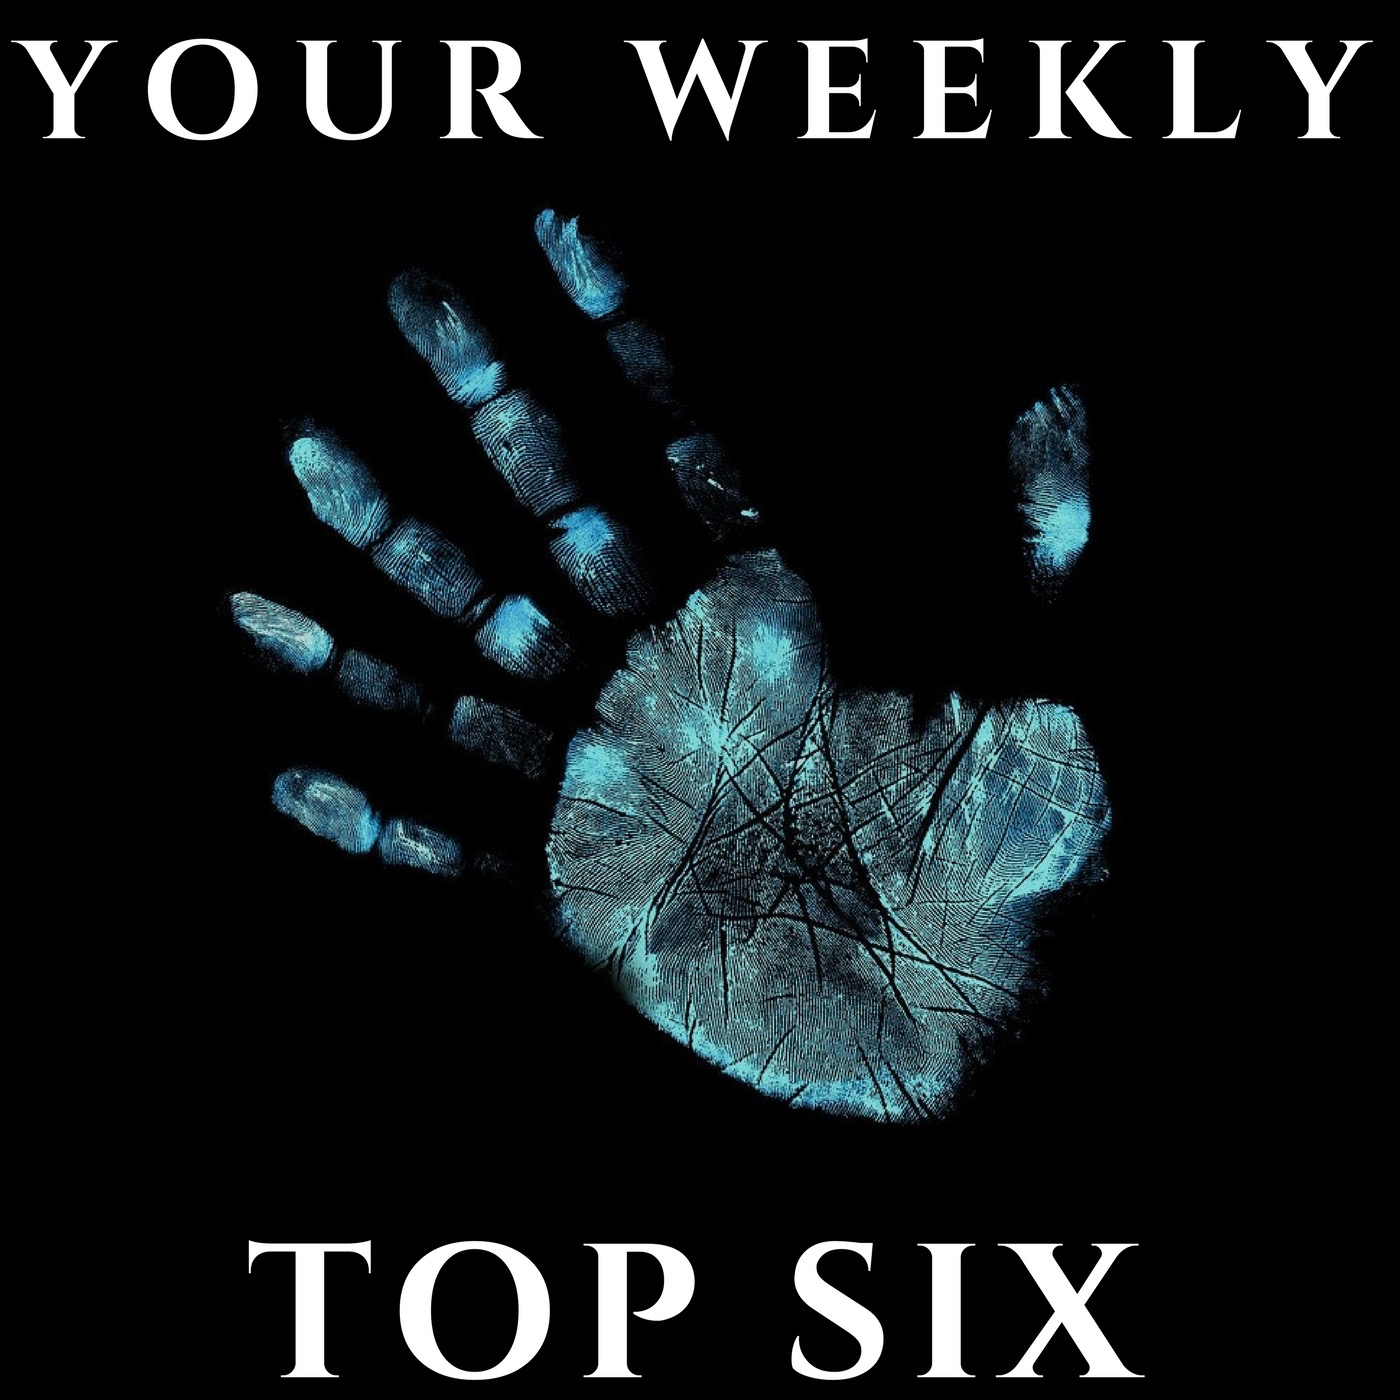 Your Weekly Top Six, Podcast, Independent Podcast, Podcast Reviews, Music Reviews, Indie, Independent Music, Alternative Music Blog, Music Promotion, Podcast Promotion,